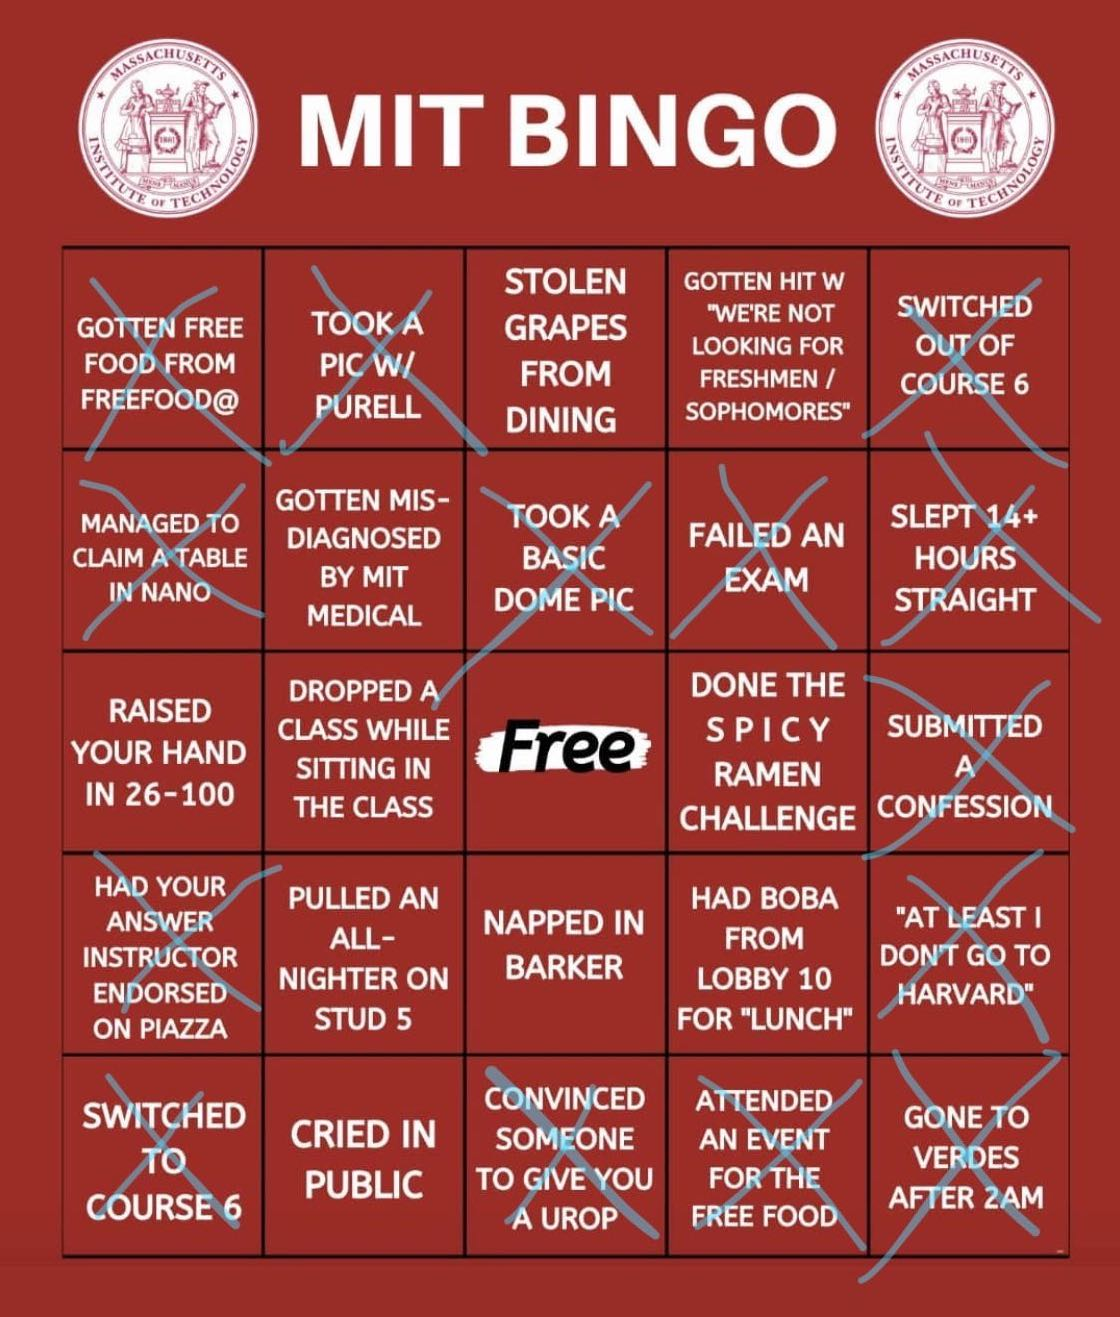 "Each person has two different MIT-themed bingos, a red and a white. This is Abby's red bingo: she got a bingo on ""Switched out of course 6"", ""Slept 14+ hours straight"", ""submitted a confession"", ""at least I don't go to harvard"", and ""gone to verdes after 2am""."